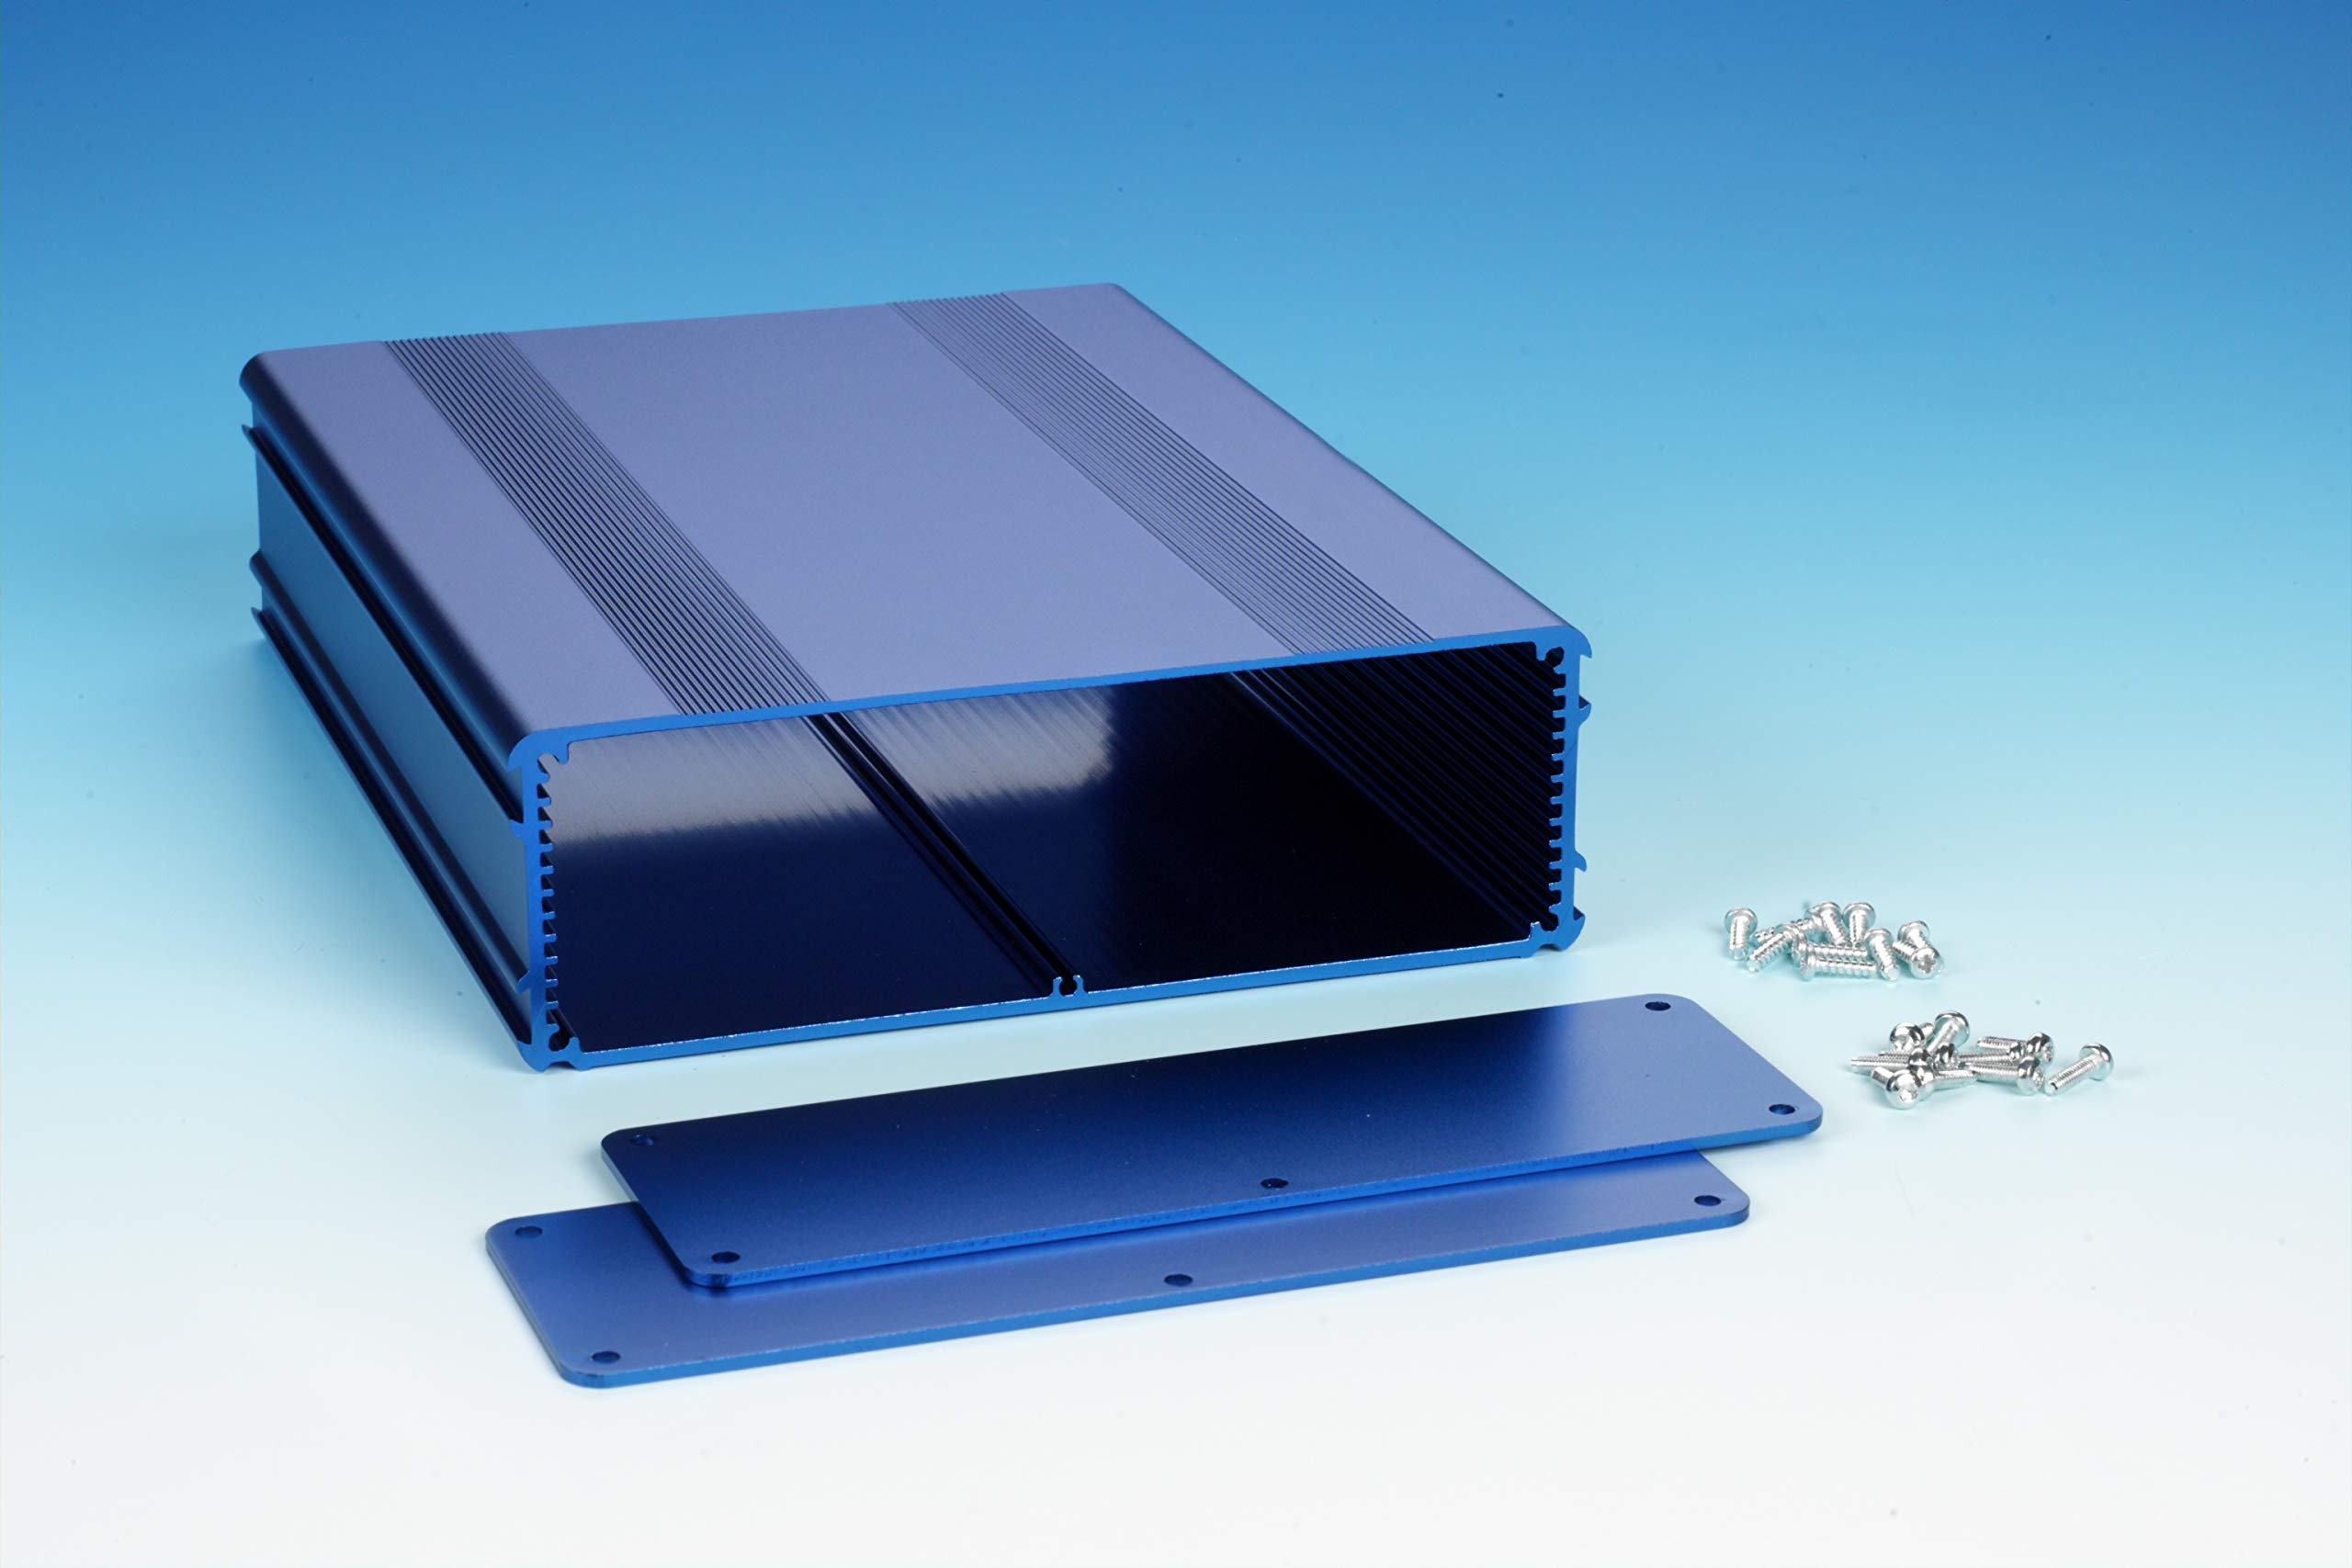 B4-220BL: Blue Anodized, Extruded Aluminum Electronic Enclosure Project Box Electronic DIY Case, size 8.66''x6.68''x2.11'' / 220 x 169.8 x 53.5mm (LWH)